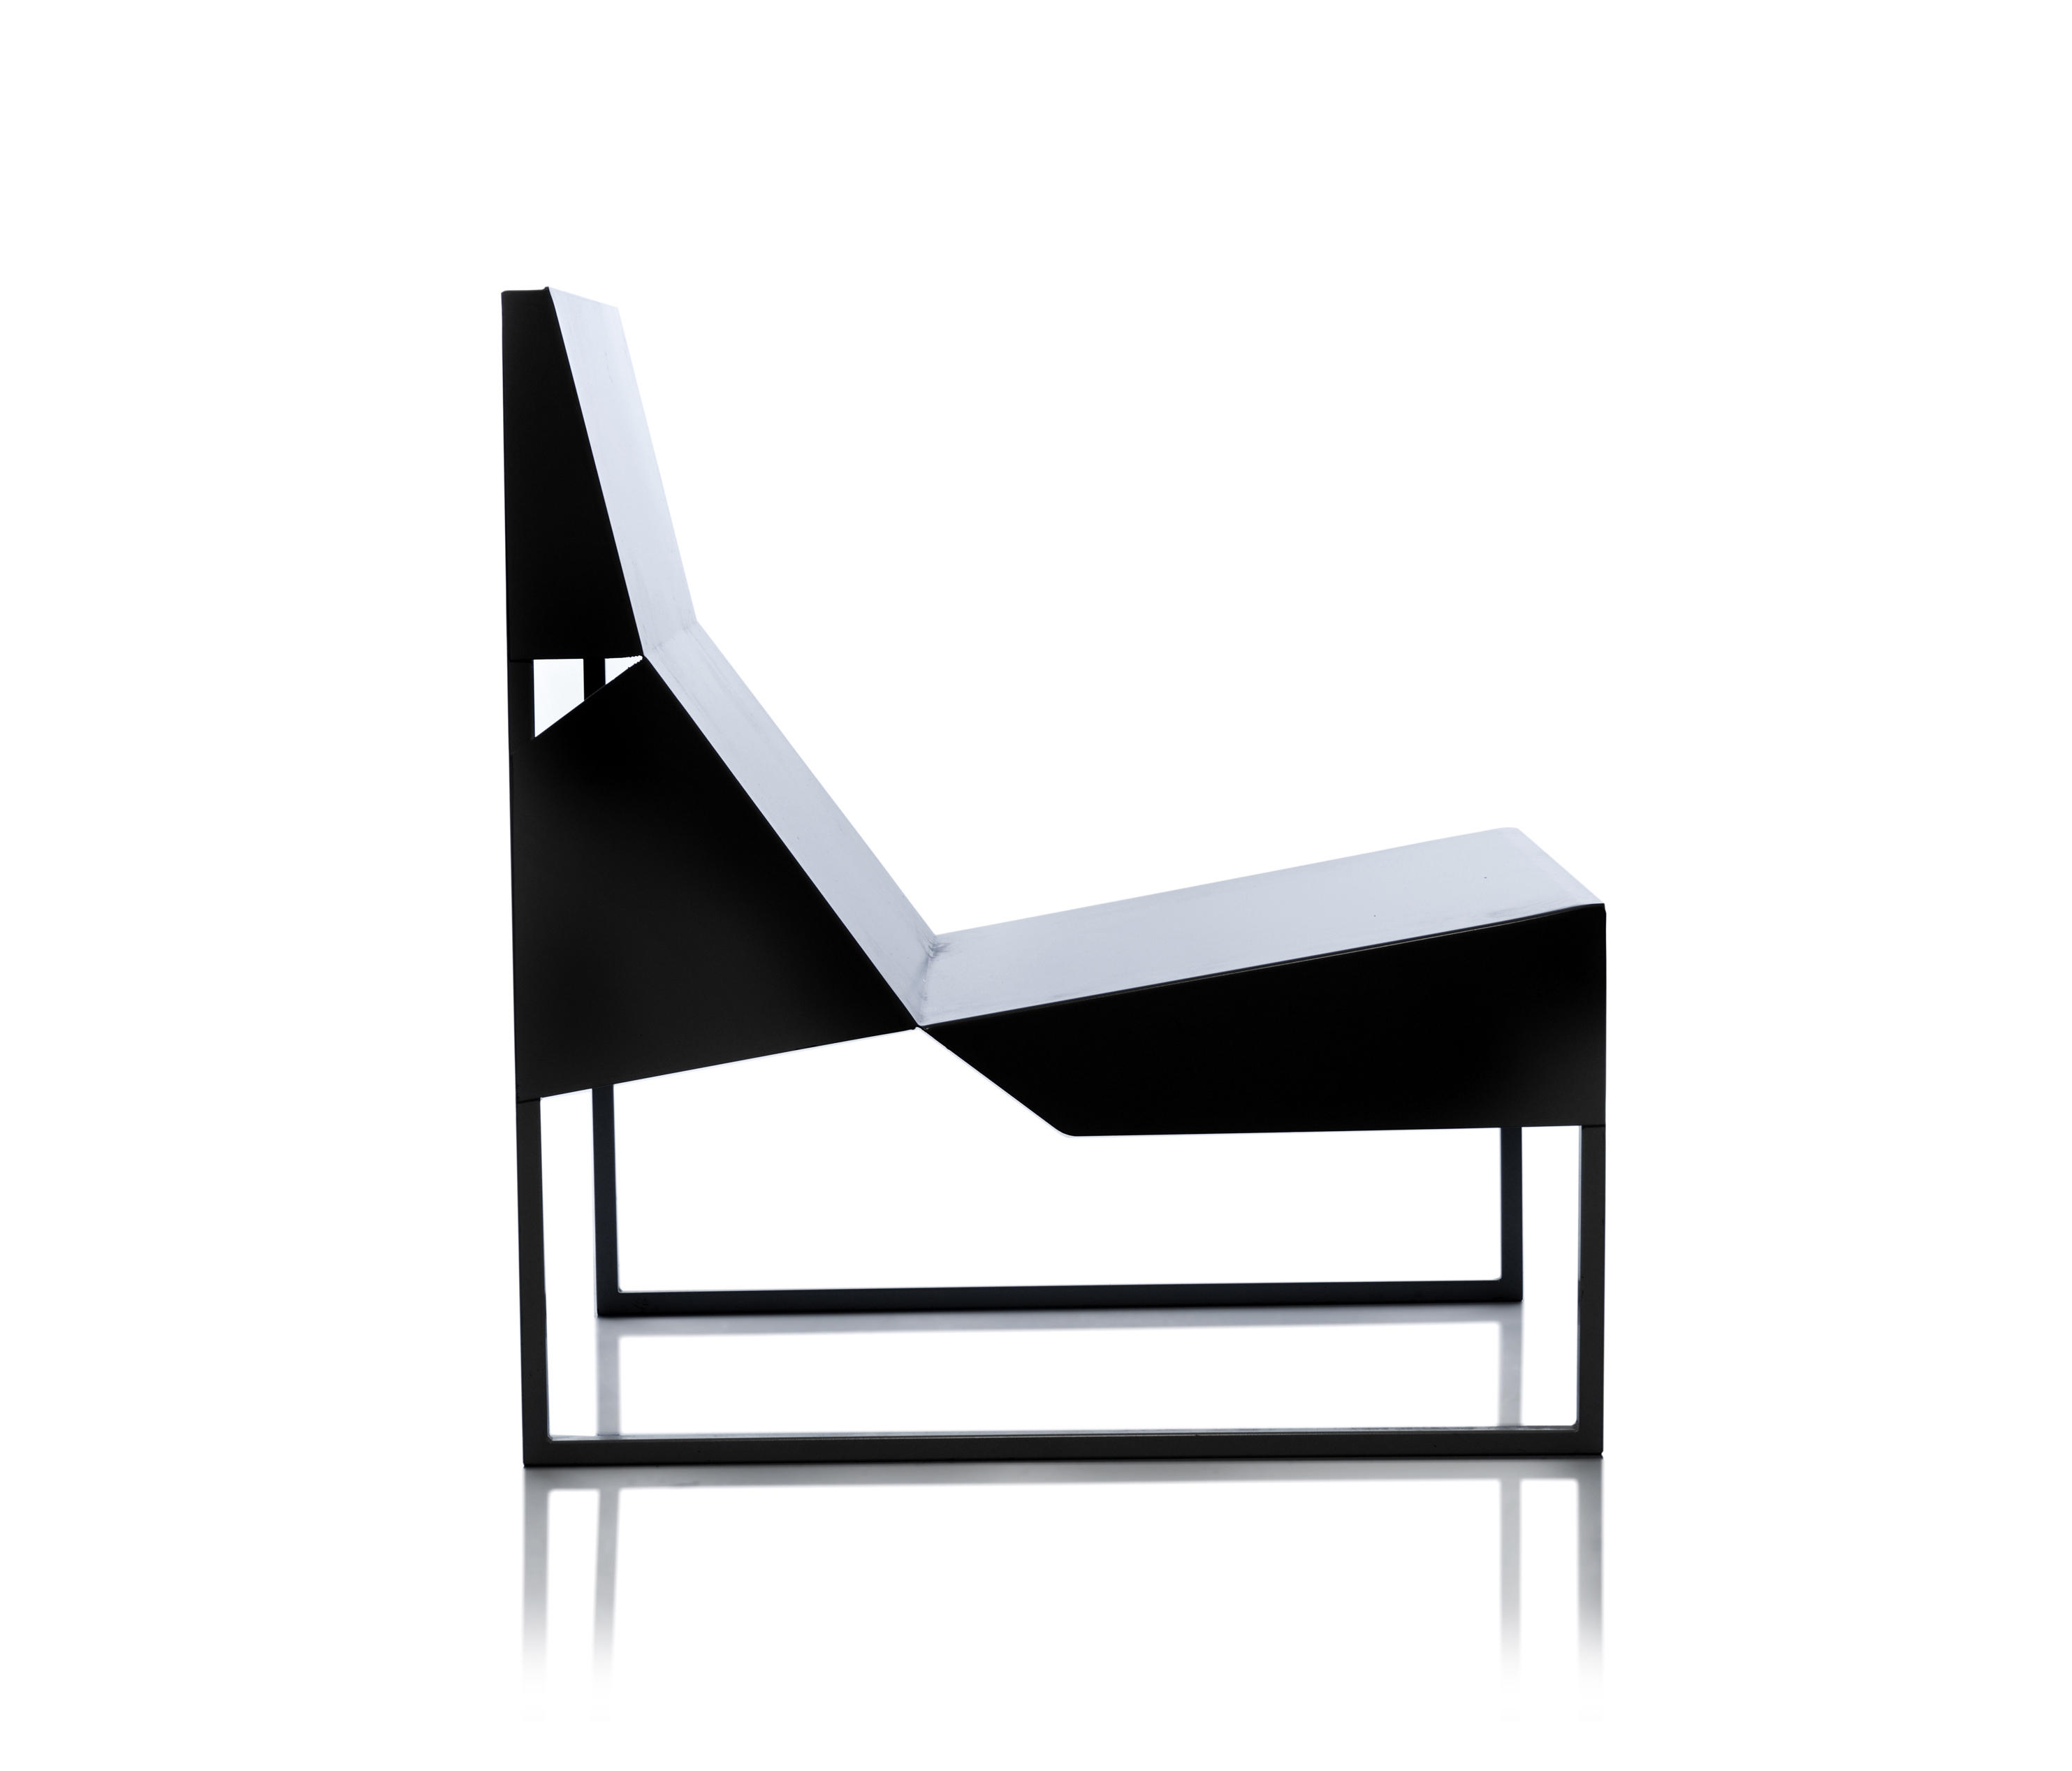 PAPER CHAIR LOUNGE Lounge chairs from Branca Lisboa